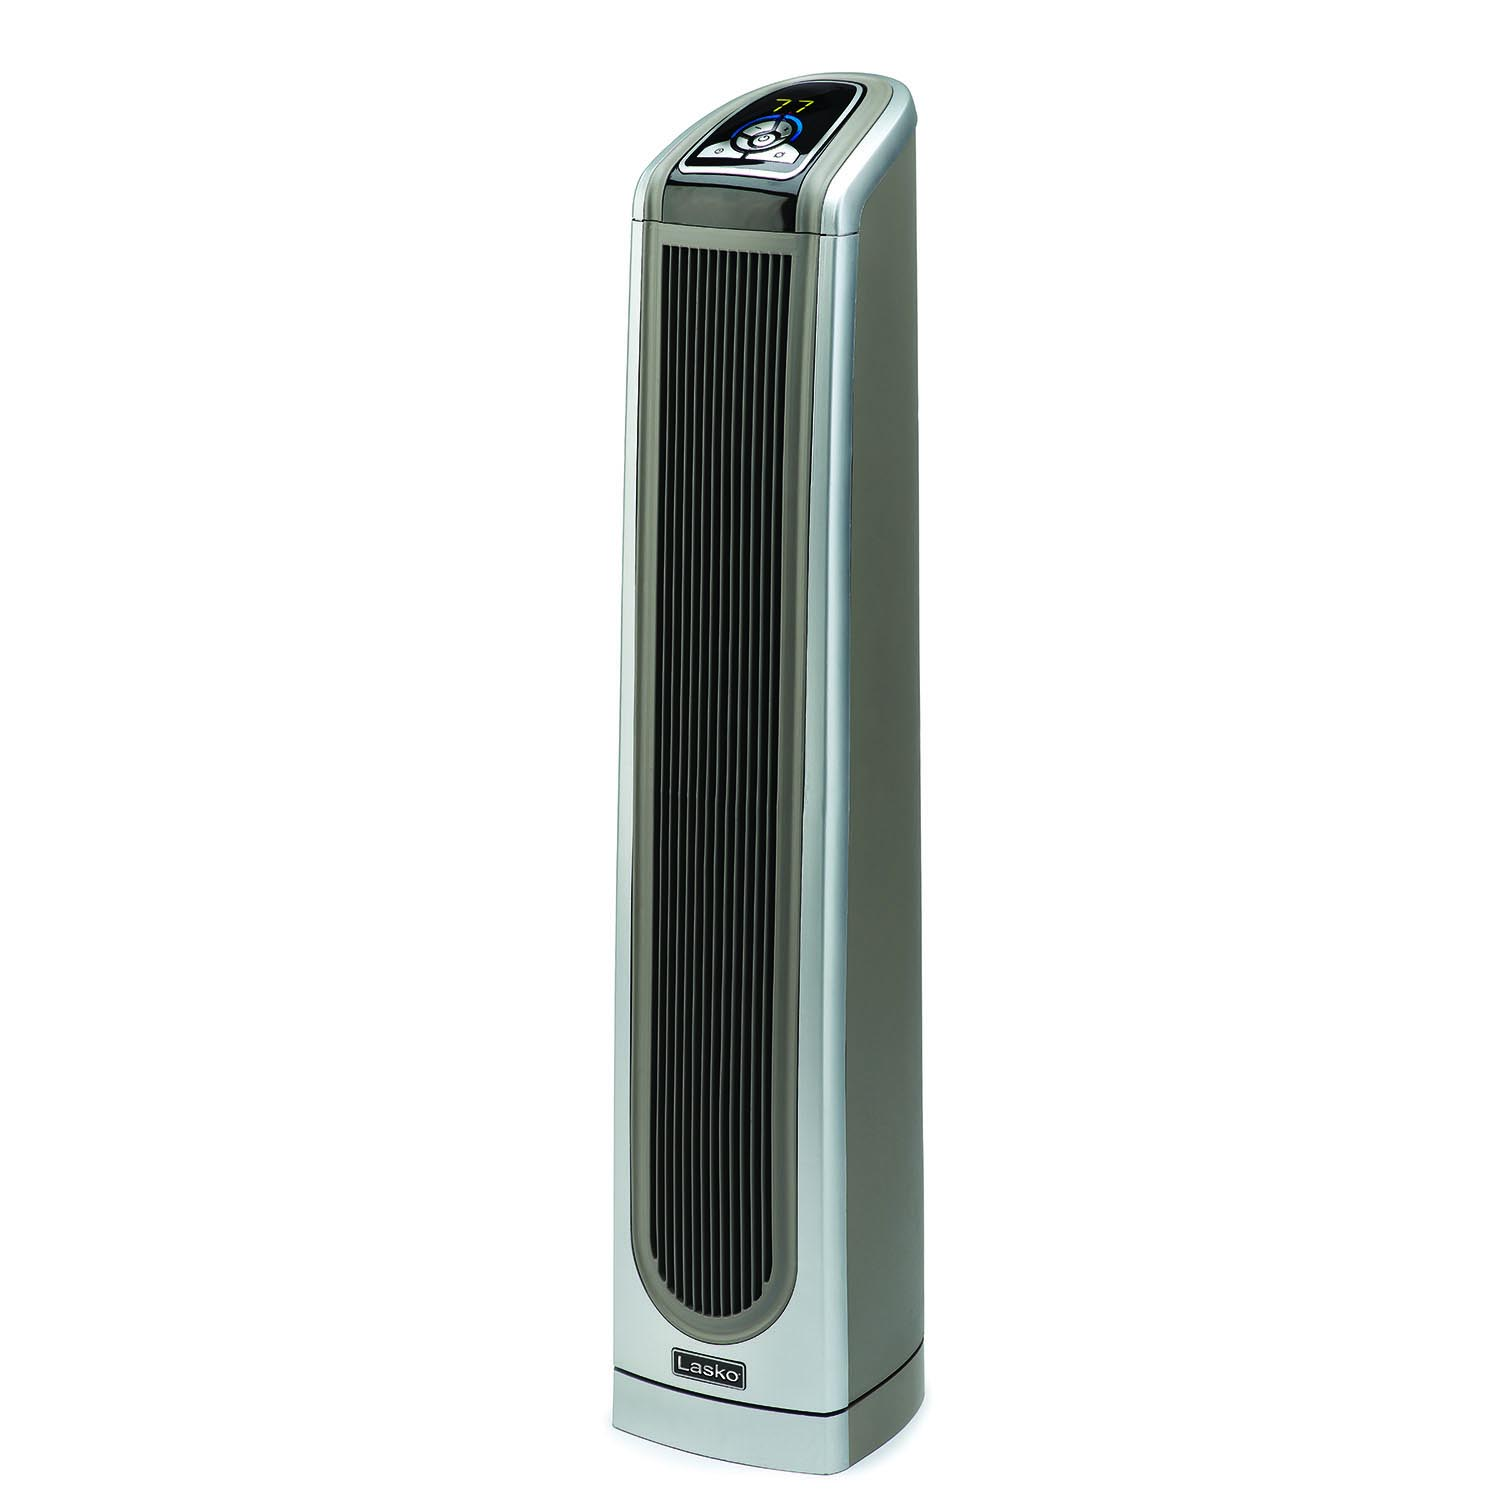 Lasko 5588 Electronic Ceramic Tower Heater with Logic Center Remote Control